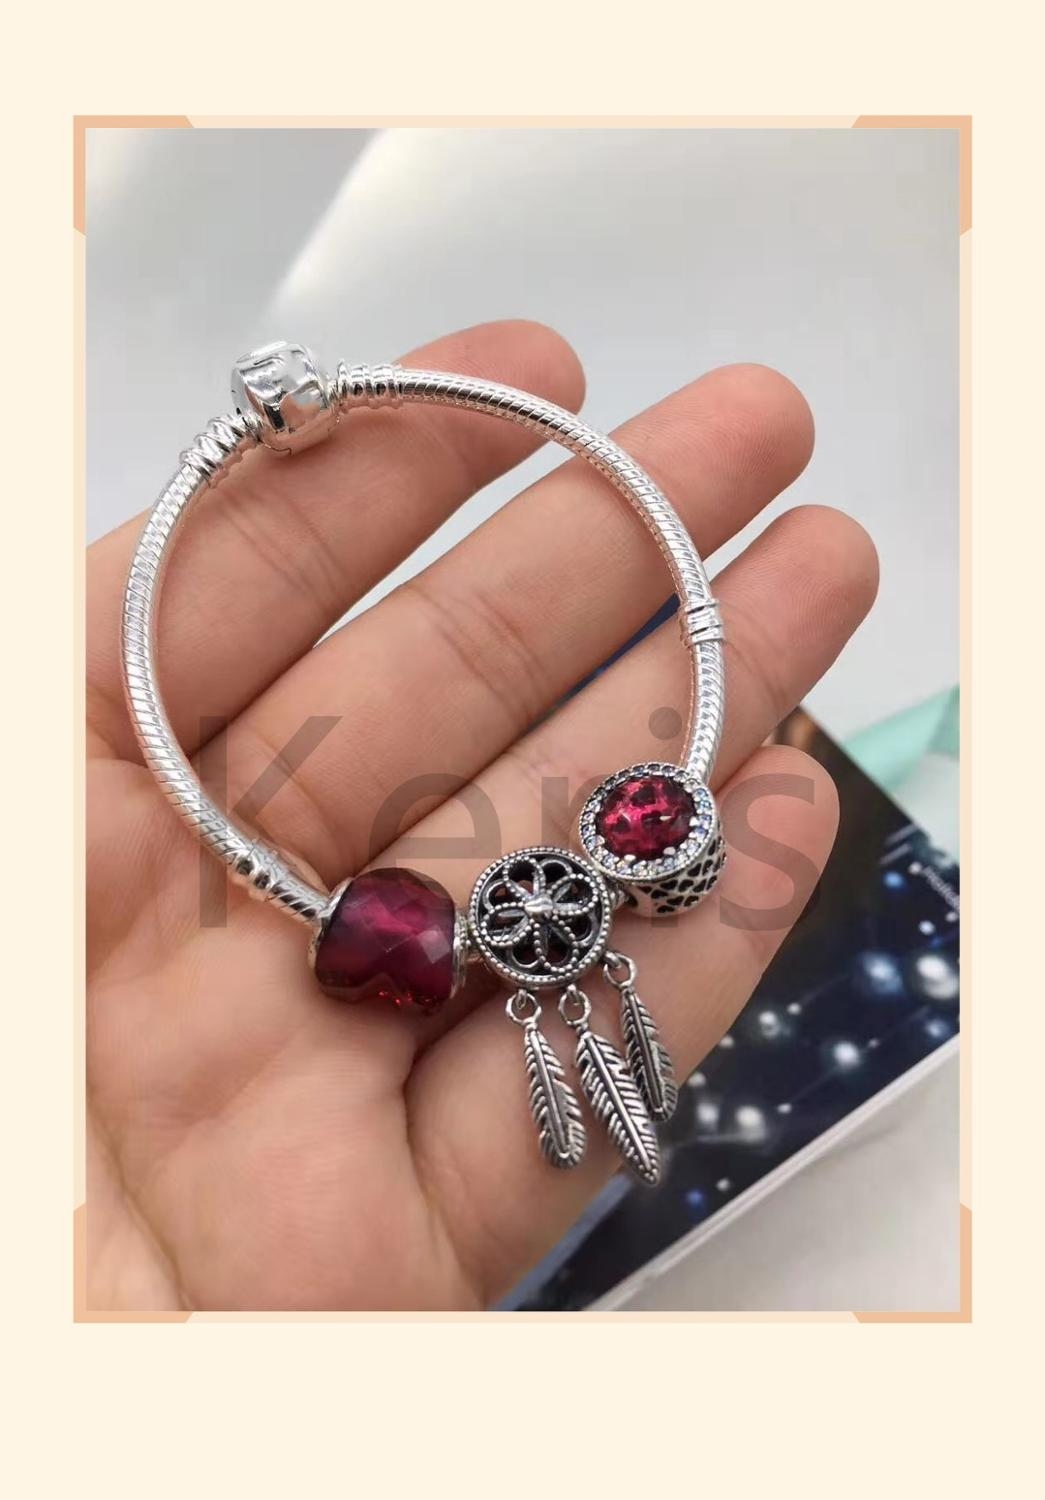 Quality 1:1 100%925 Sterling Silver New Red Cat'S Eye Snake Bone String Bracelet First Choice For Gift Free Package